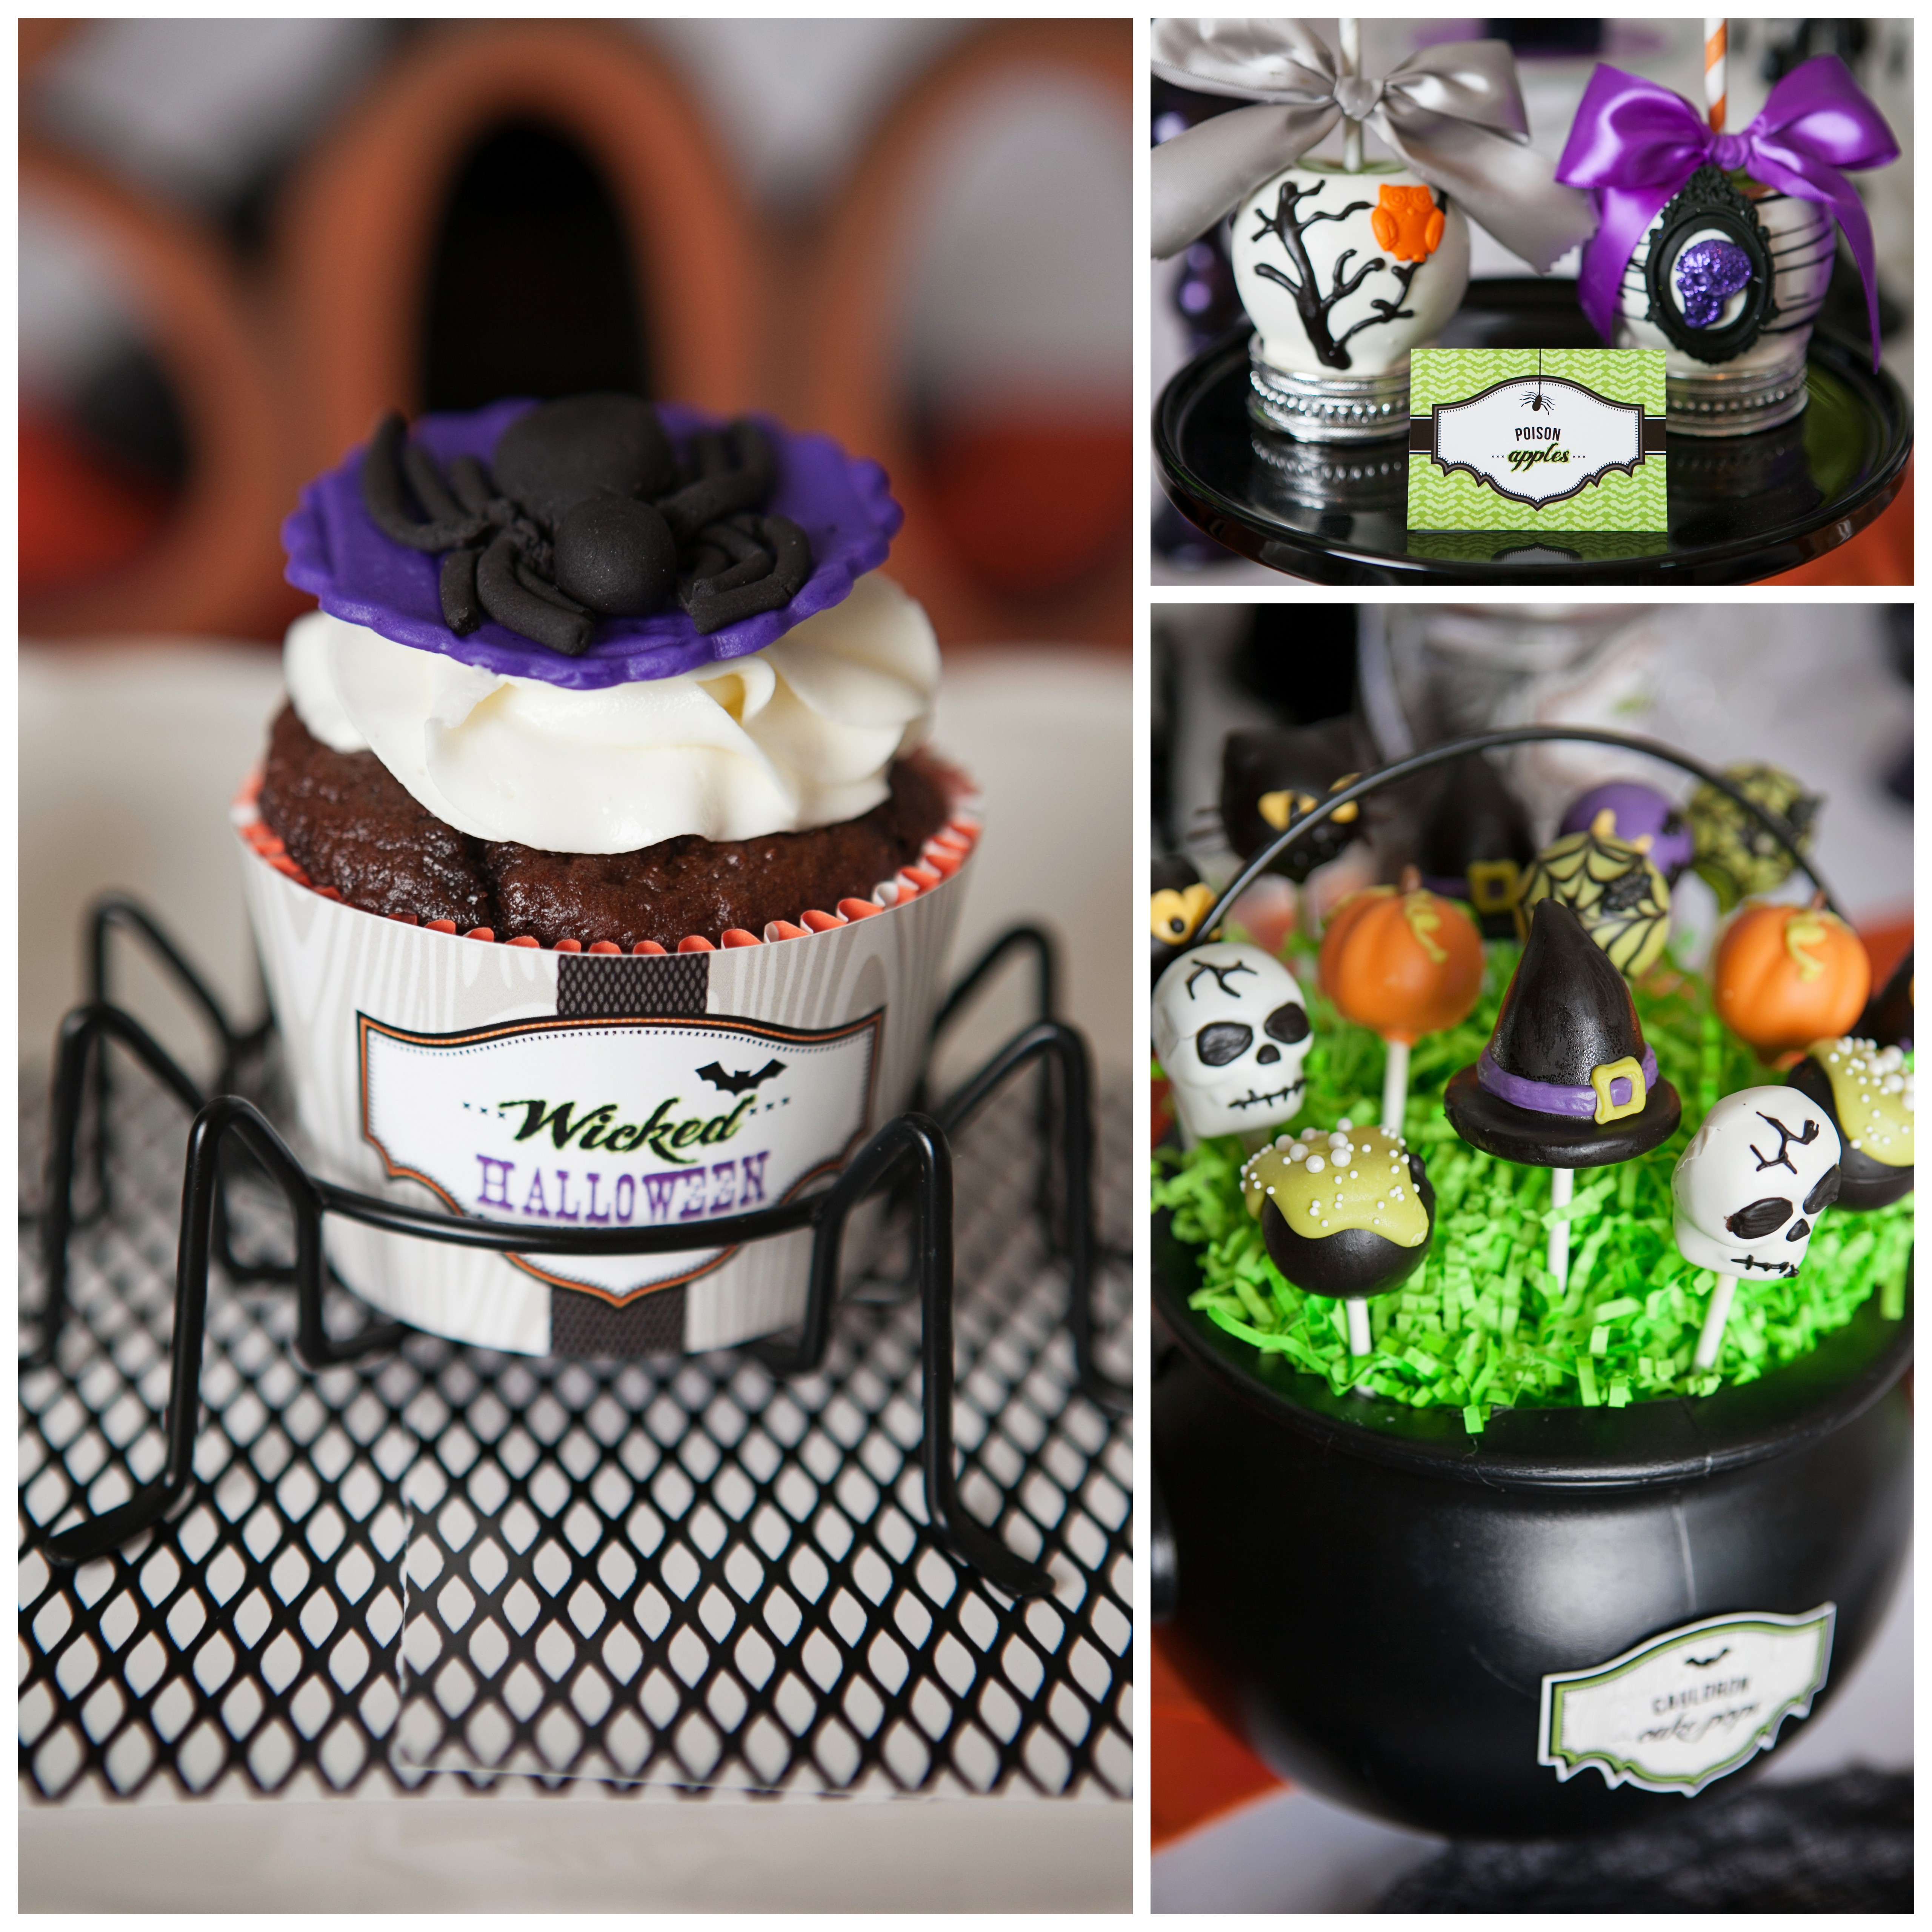 The Witch Themed Party: A Wicked Witch Inspired Halloween Party